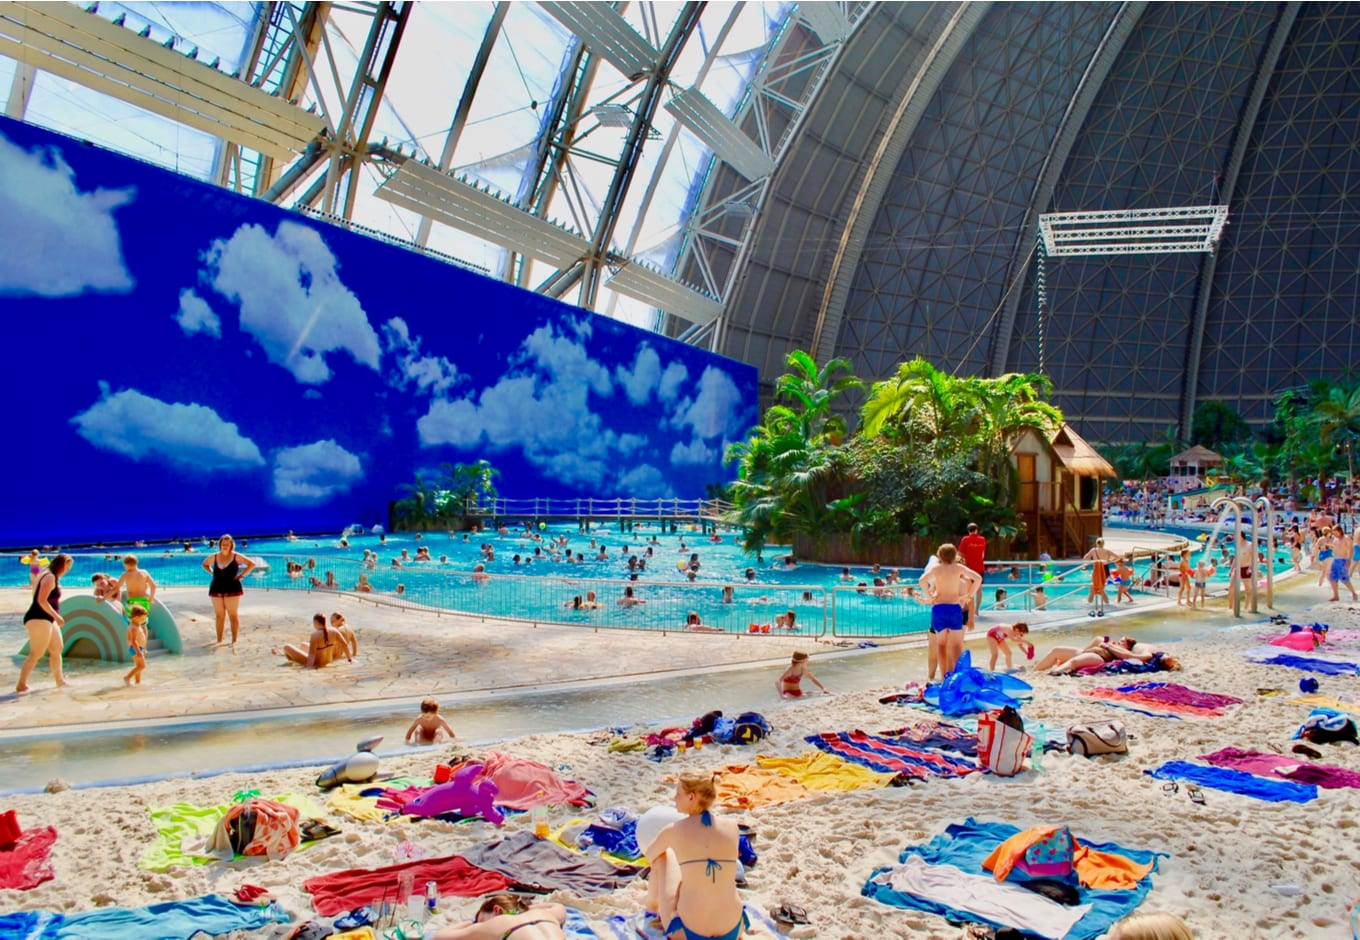 View the sandy beach by the pool at the Tropical Islands Water Park, in Germany.